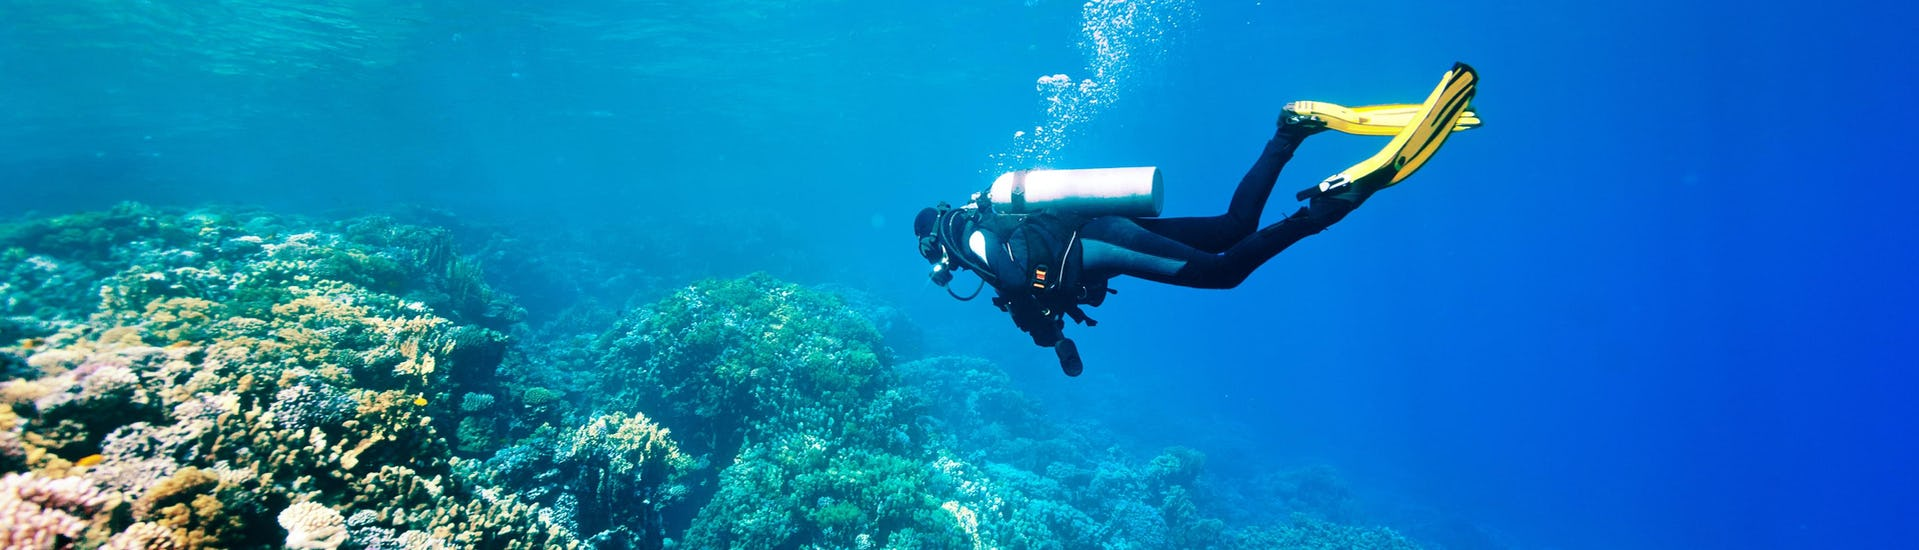 A scuba diver is exploring a reef while scuba diving in the scuba diving destination of Tenerife.